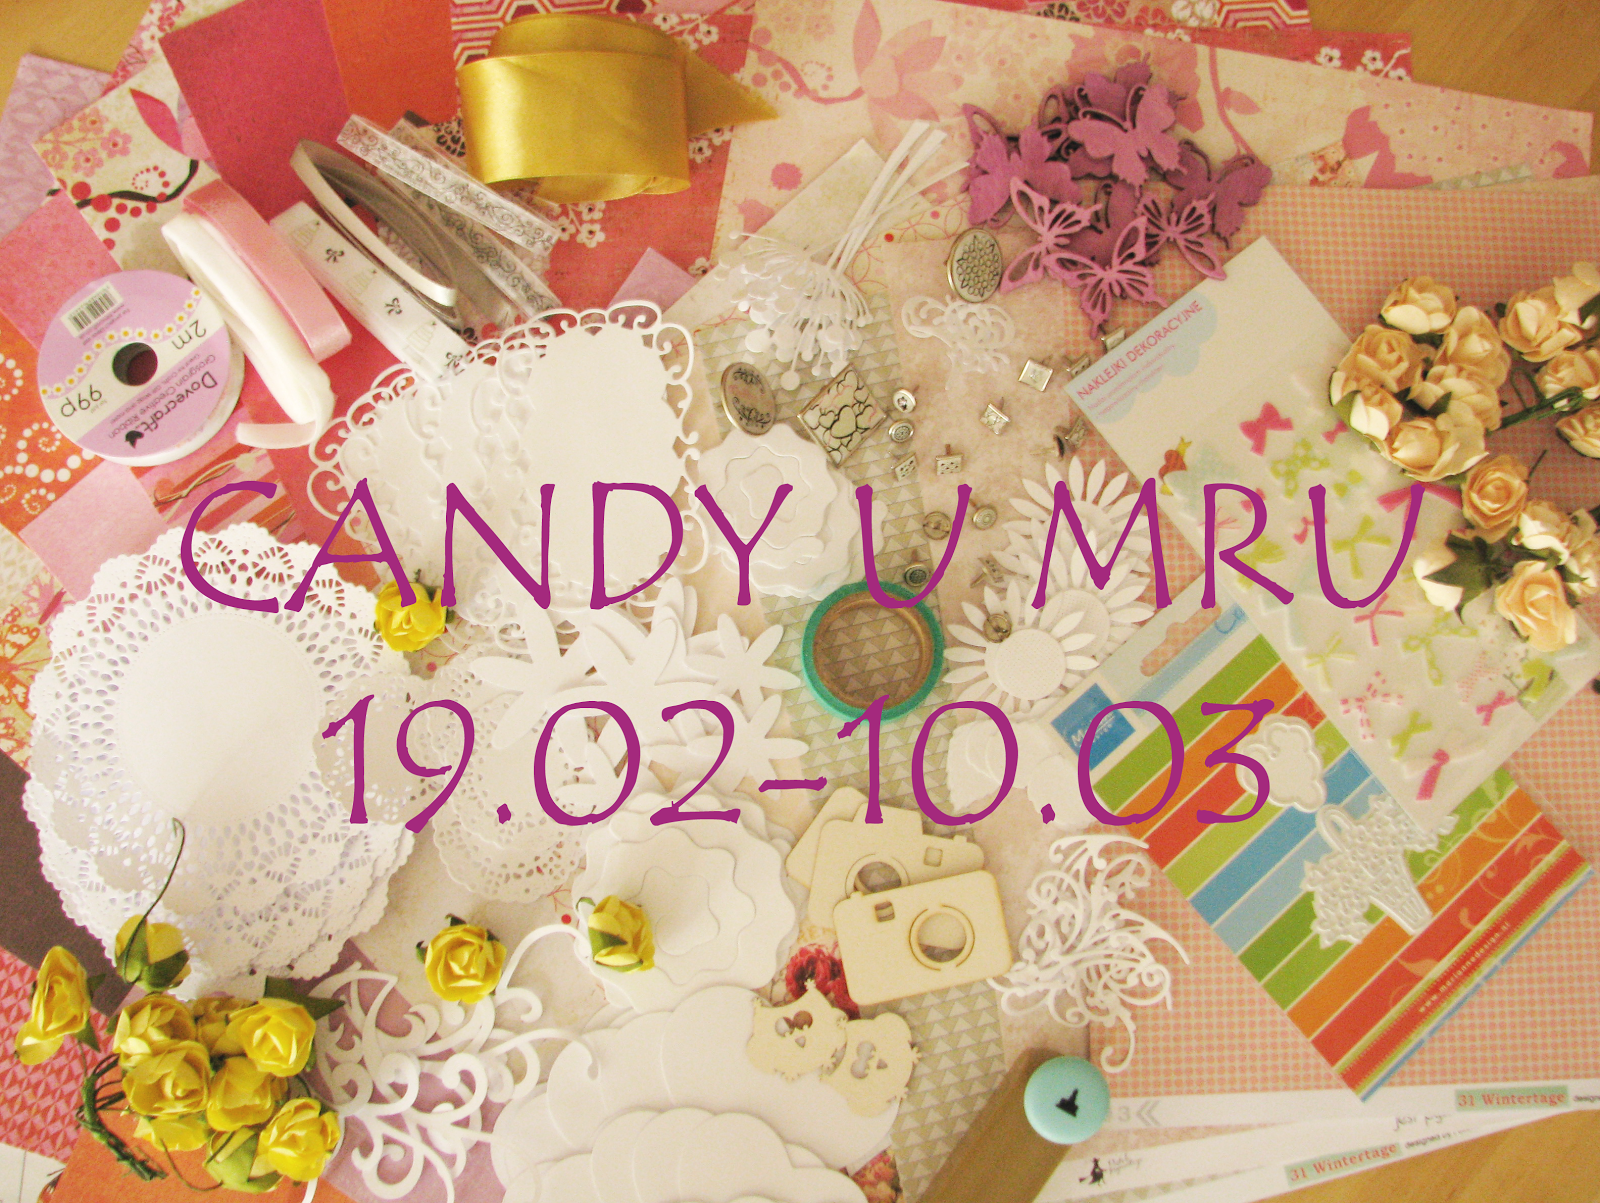 Candy do 10.03.2014